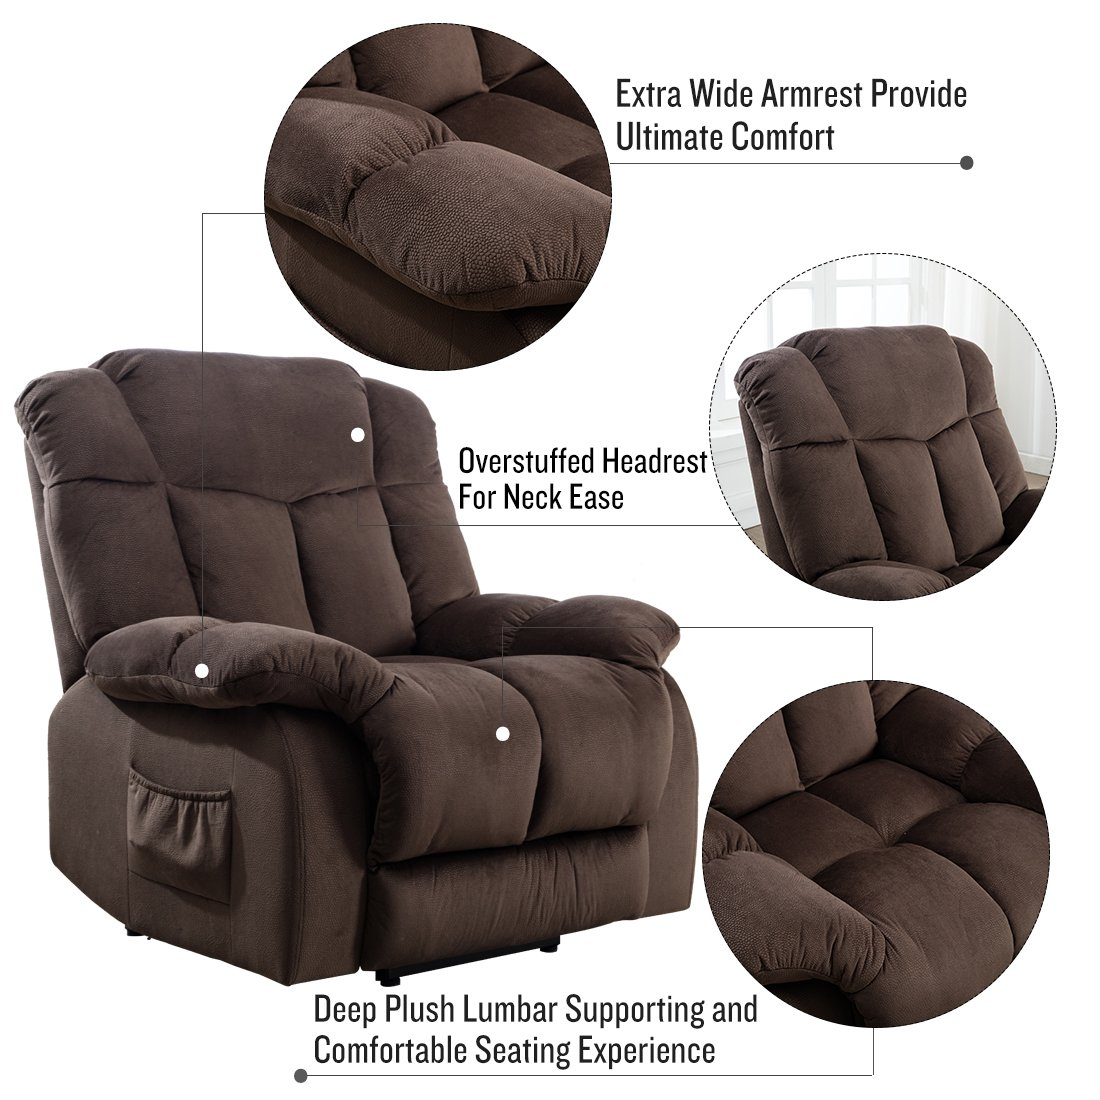 Miraculous 5 Best Recliners For Sleeping Dec 2019 Reviews Buying Machost Co Dining Chair Design Ideas Machostcouk